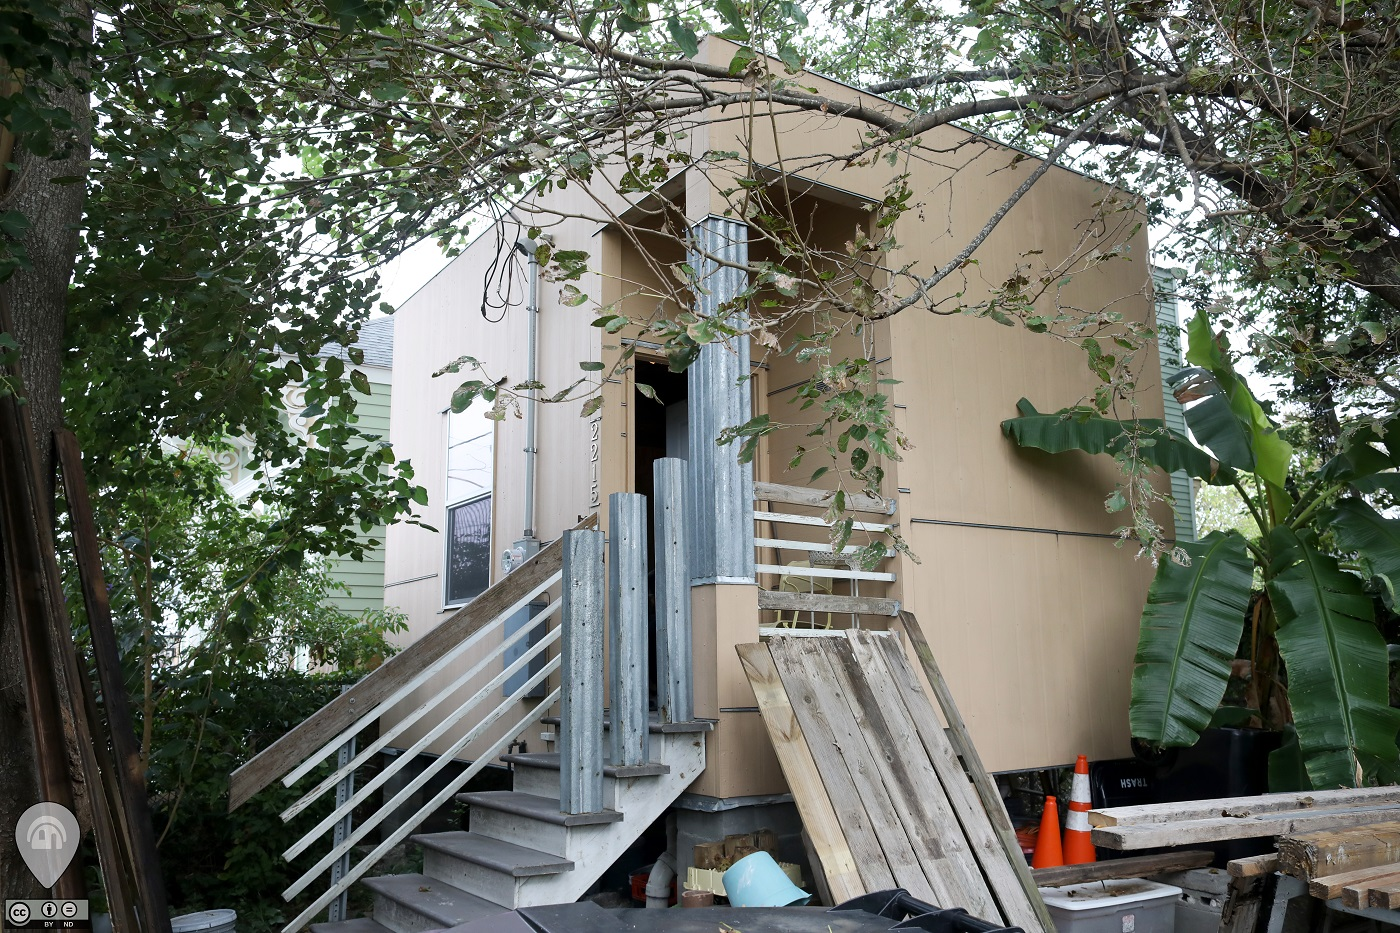 The Tiniest Home In New Orleans | Weird Homes Tour New Orleans